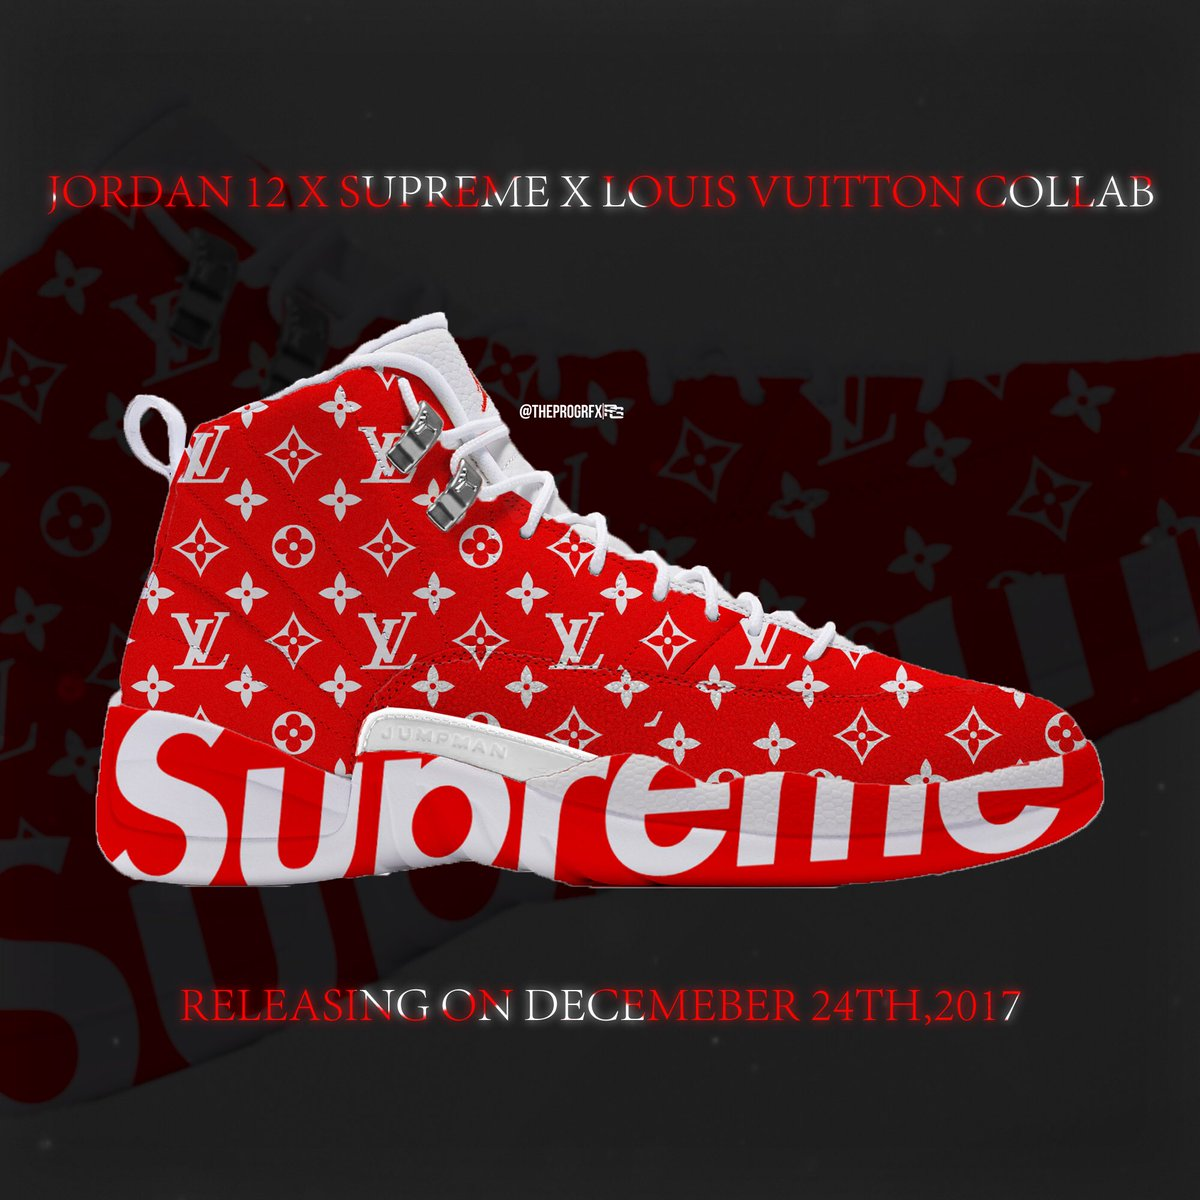 TheProGrfx On Twitter Custom Supreme X Louis Vuitton Jordan 12 Collab Fashion Clothes Shoes Shoe LouisVuitton Design